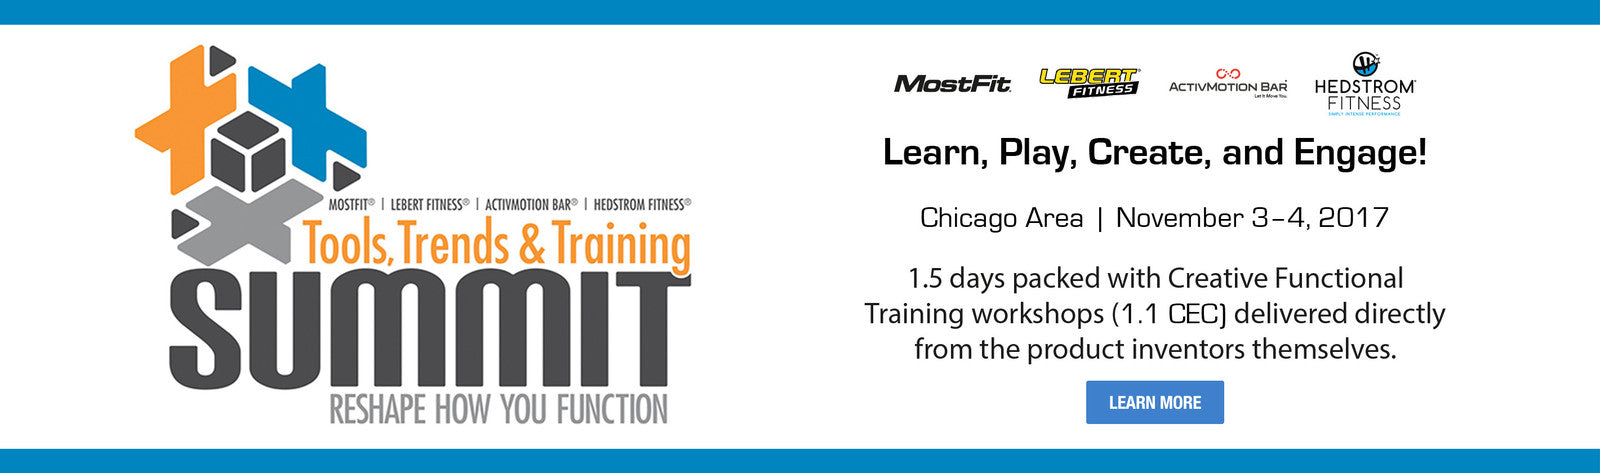 Trends, Tools and Training Summit with Hedstrom Fitness, Lebert Fitness, ActivMotion Bar, and MostFit